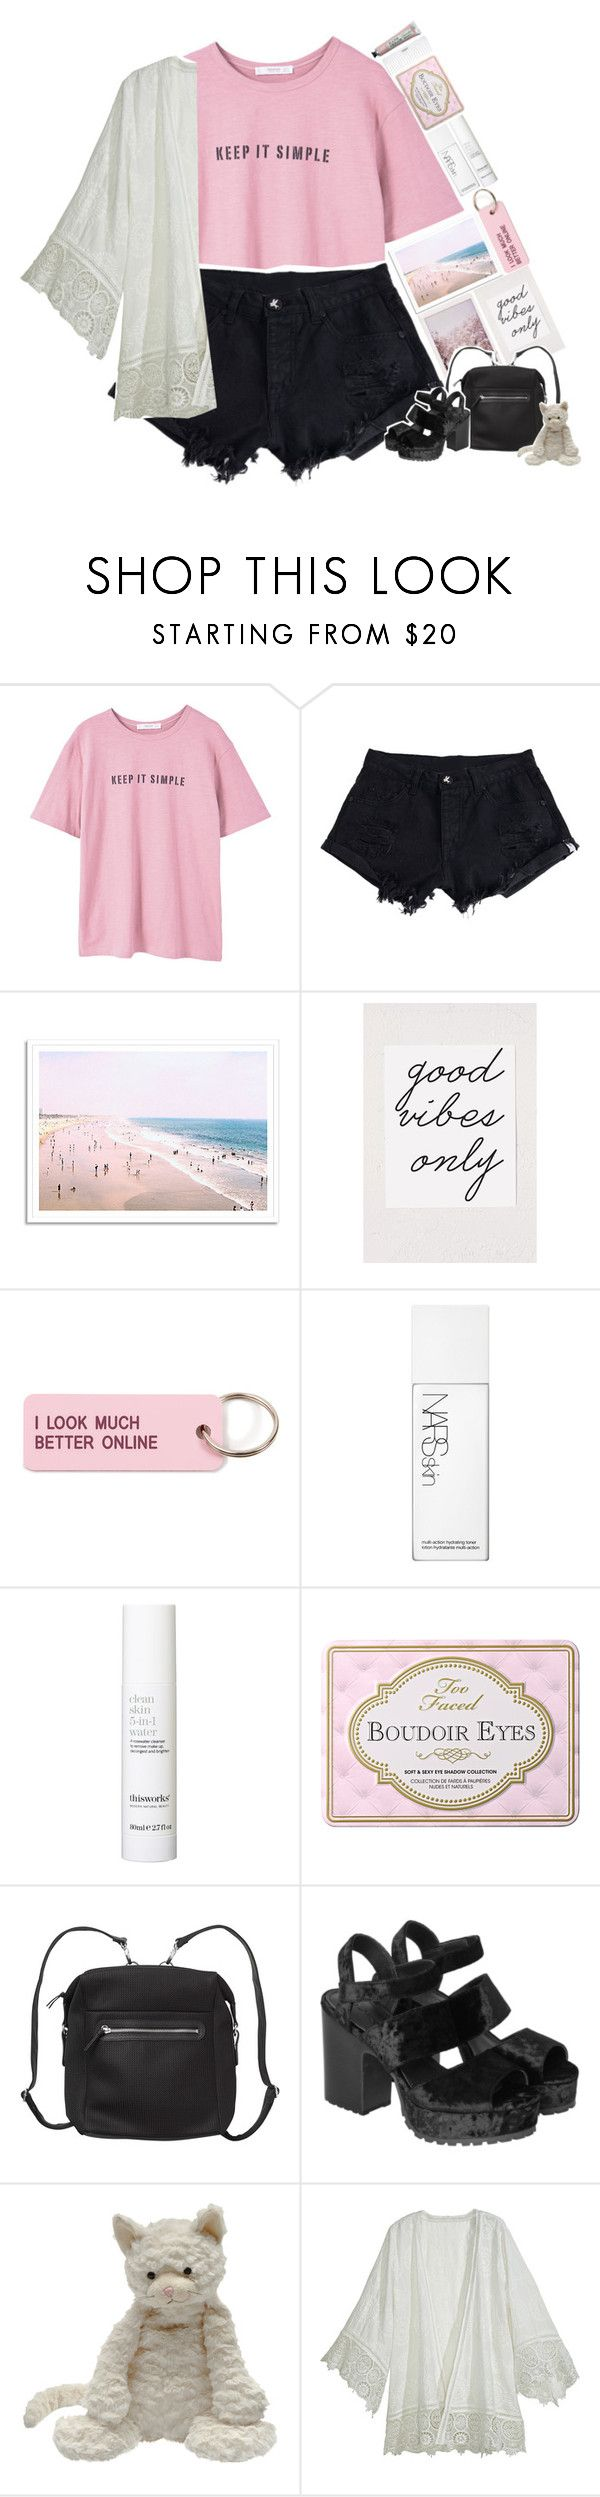 """""""."""" by loldonutsss ❤ liked on Polyvore featuring MANGO, WithChic, Urban Outfitters, Various Projects, NARS Cosmetics, This Works, Monki, Conair, Jellycat and Calypso St. Barth"""